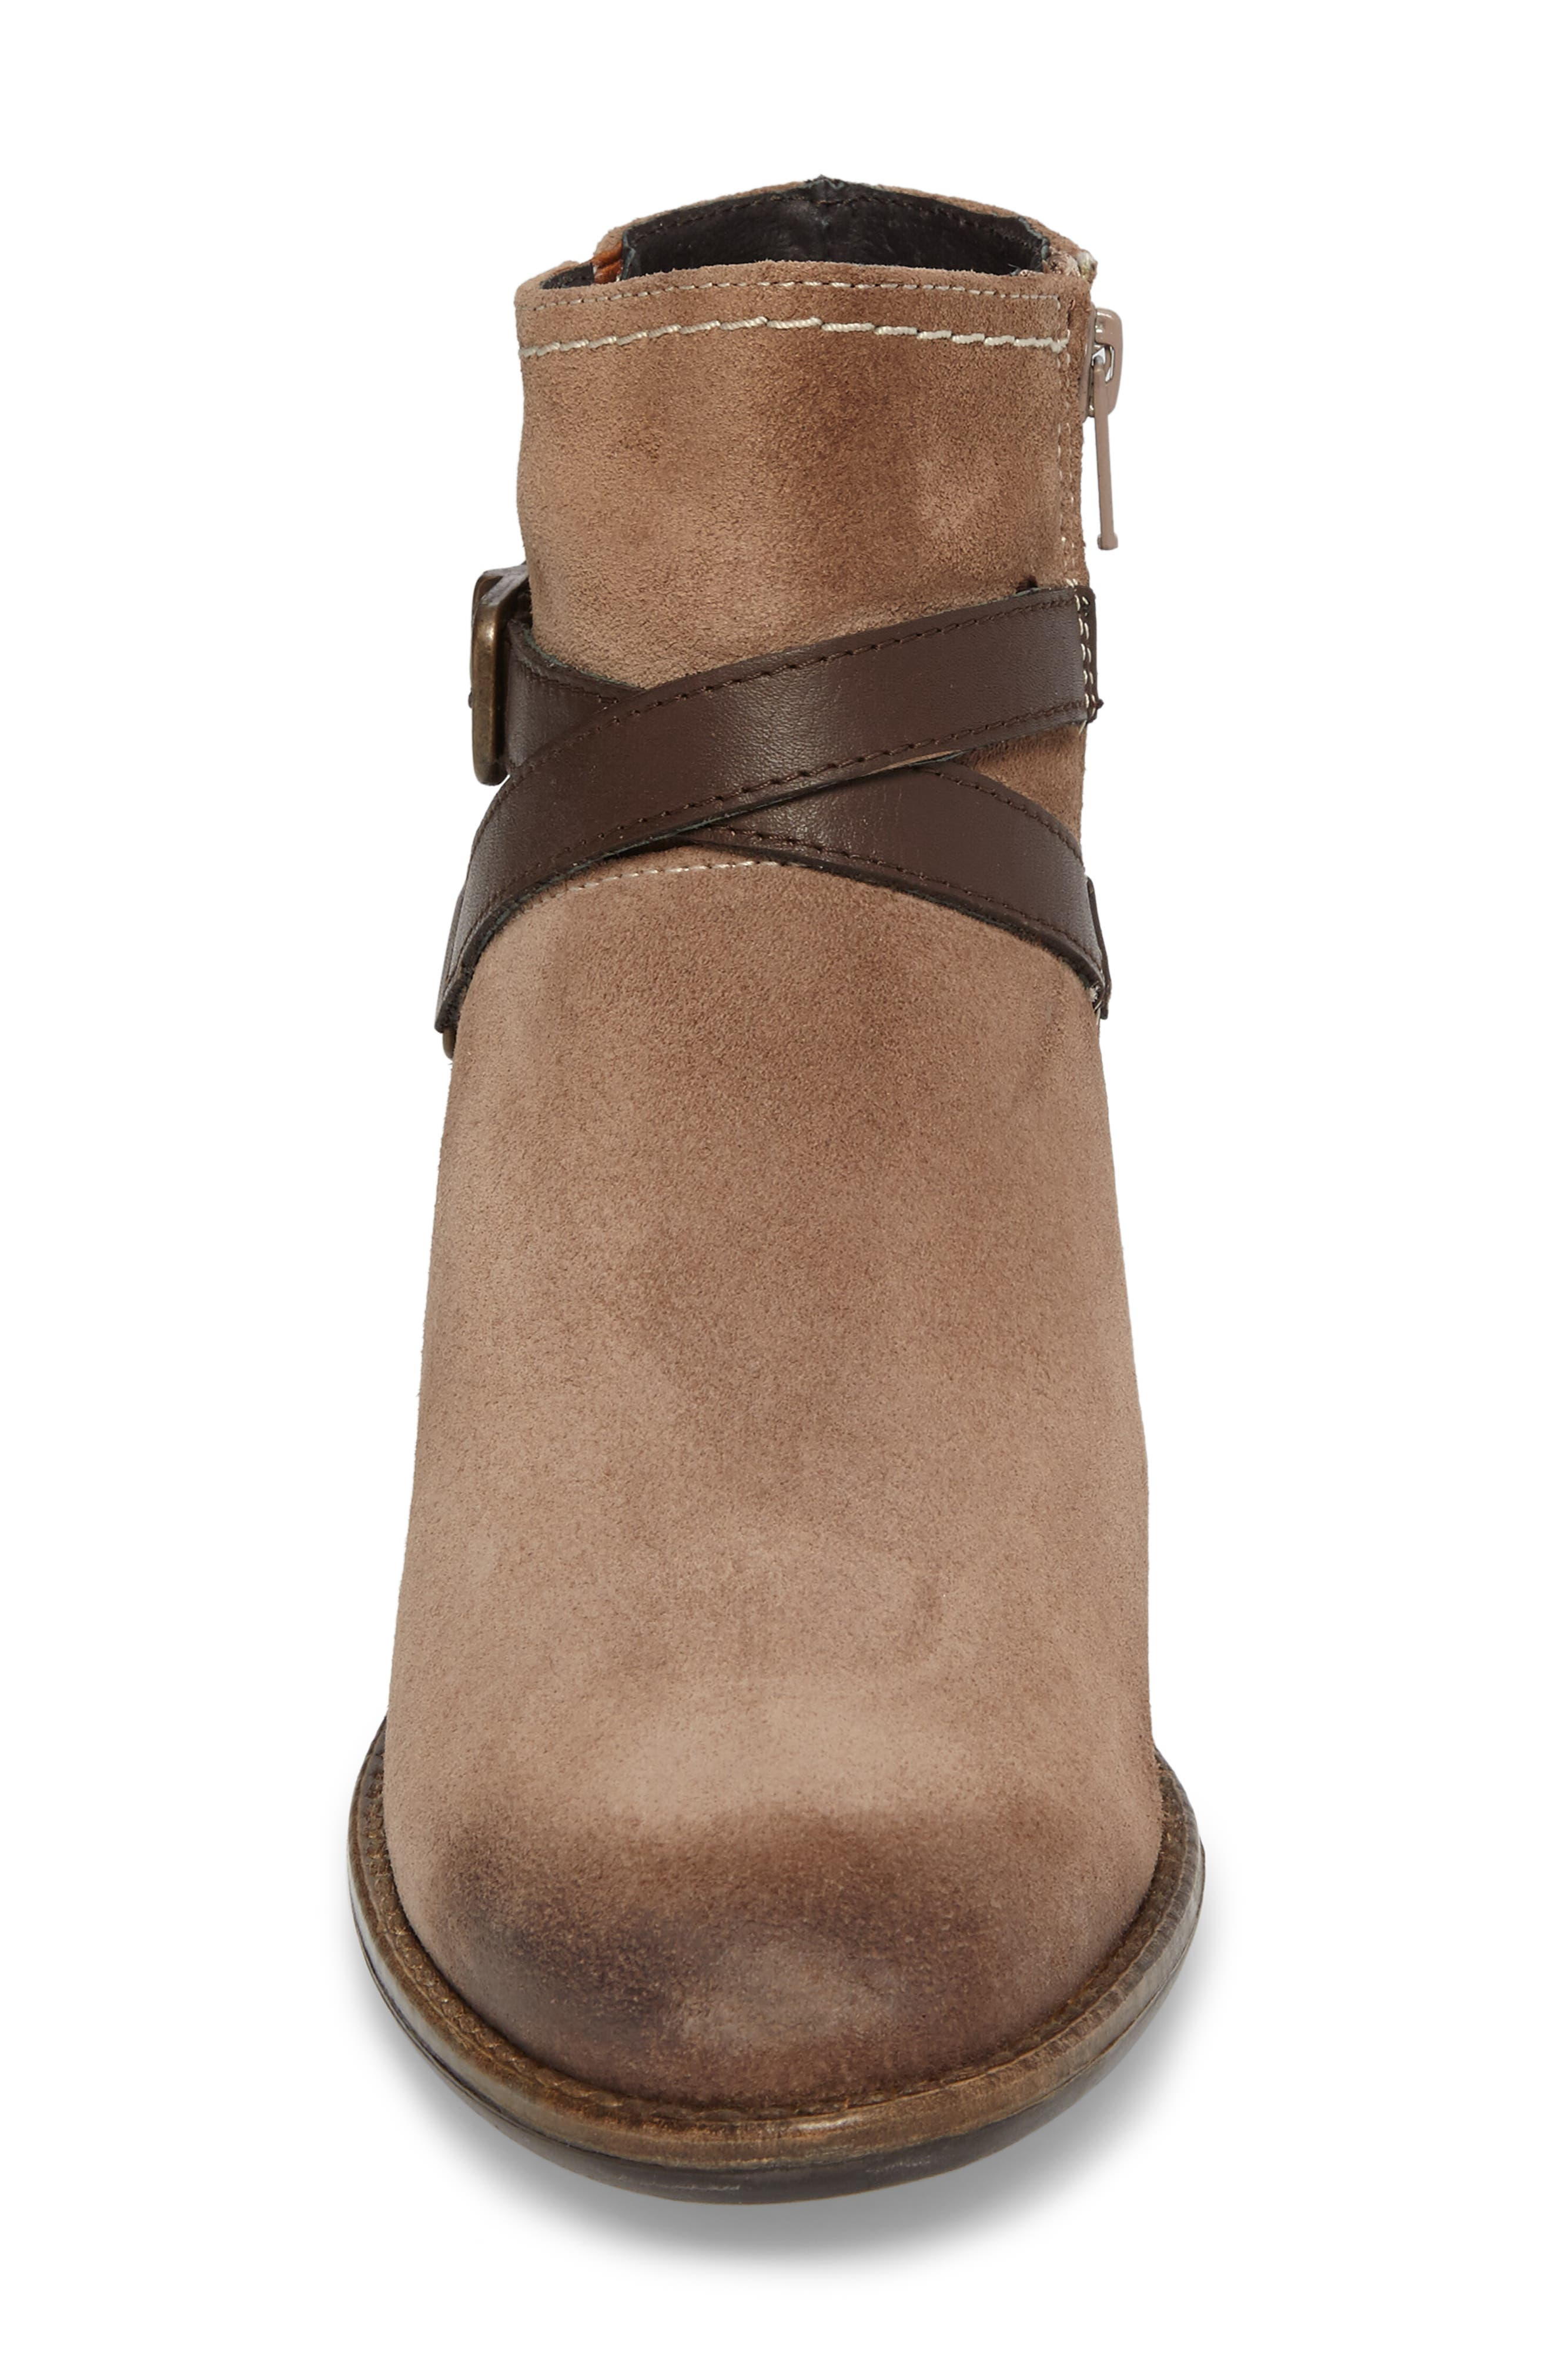 Greenville Waterproof Bootie,                             Alternate thumbnail 5, color,                             Taupe